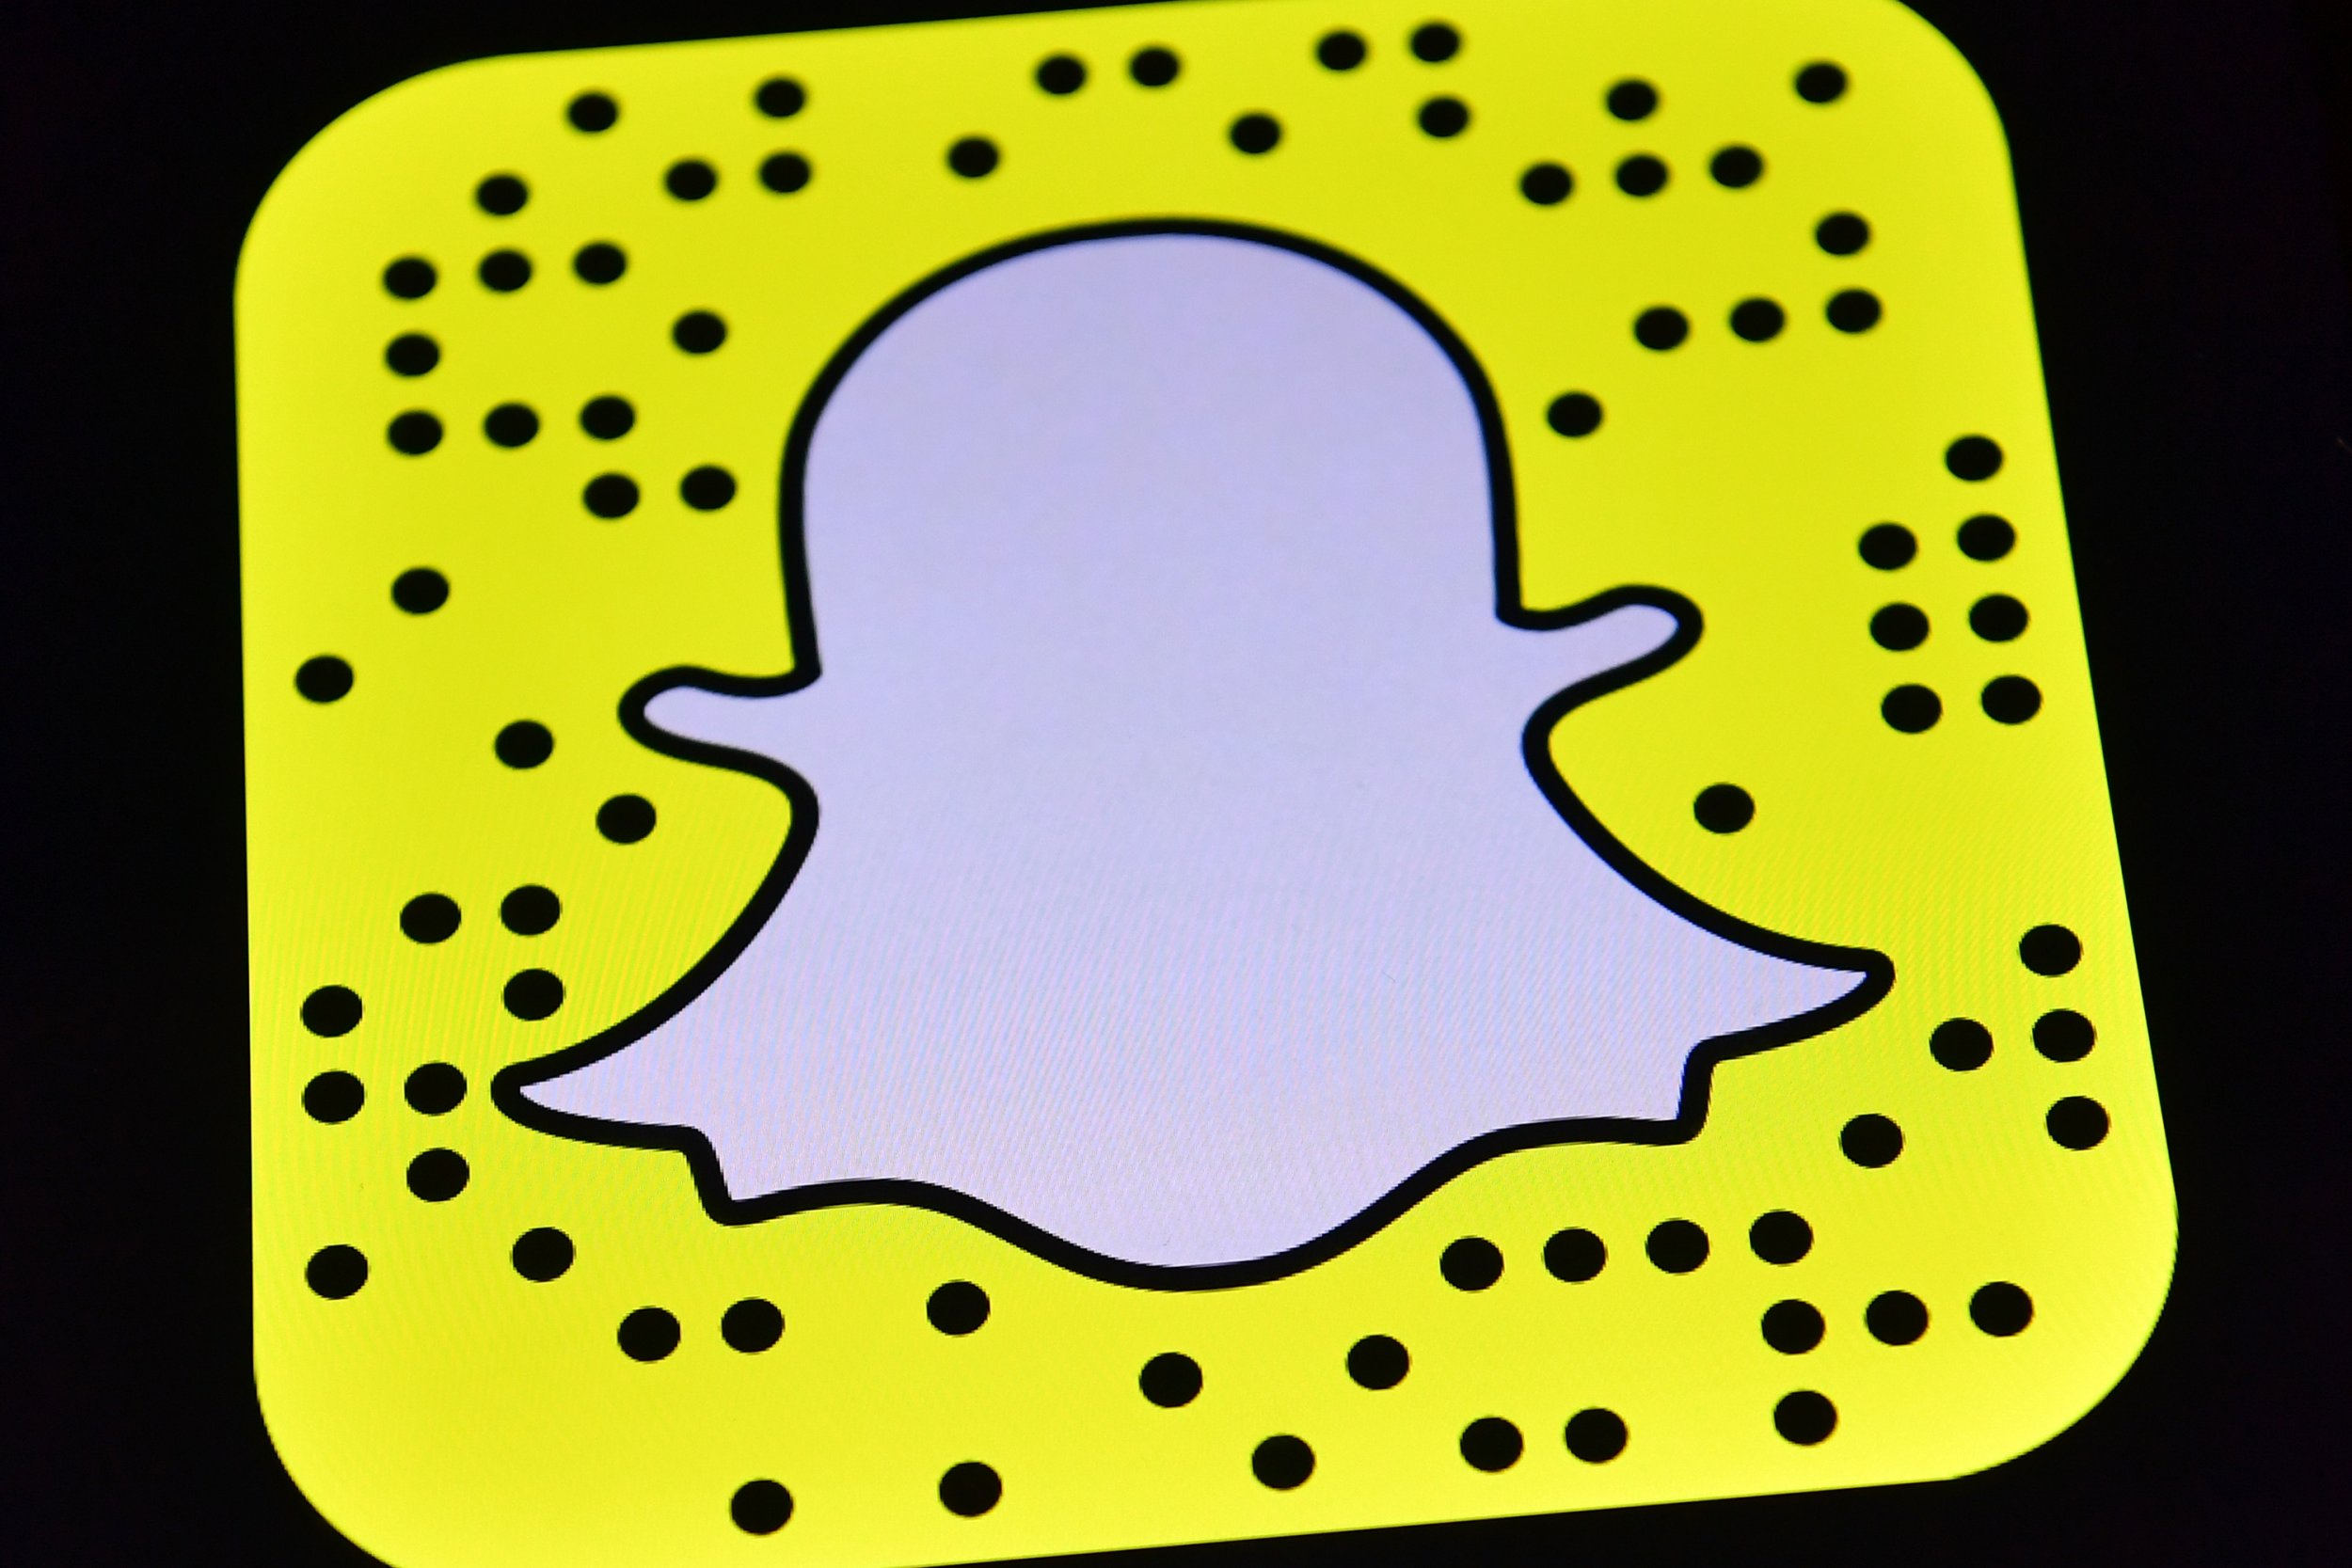 What Does The Heart Mean On Snapchat Snapchat Emoji Meanings For